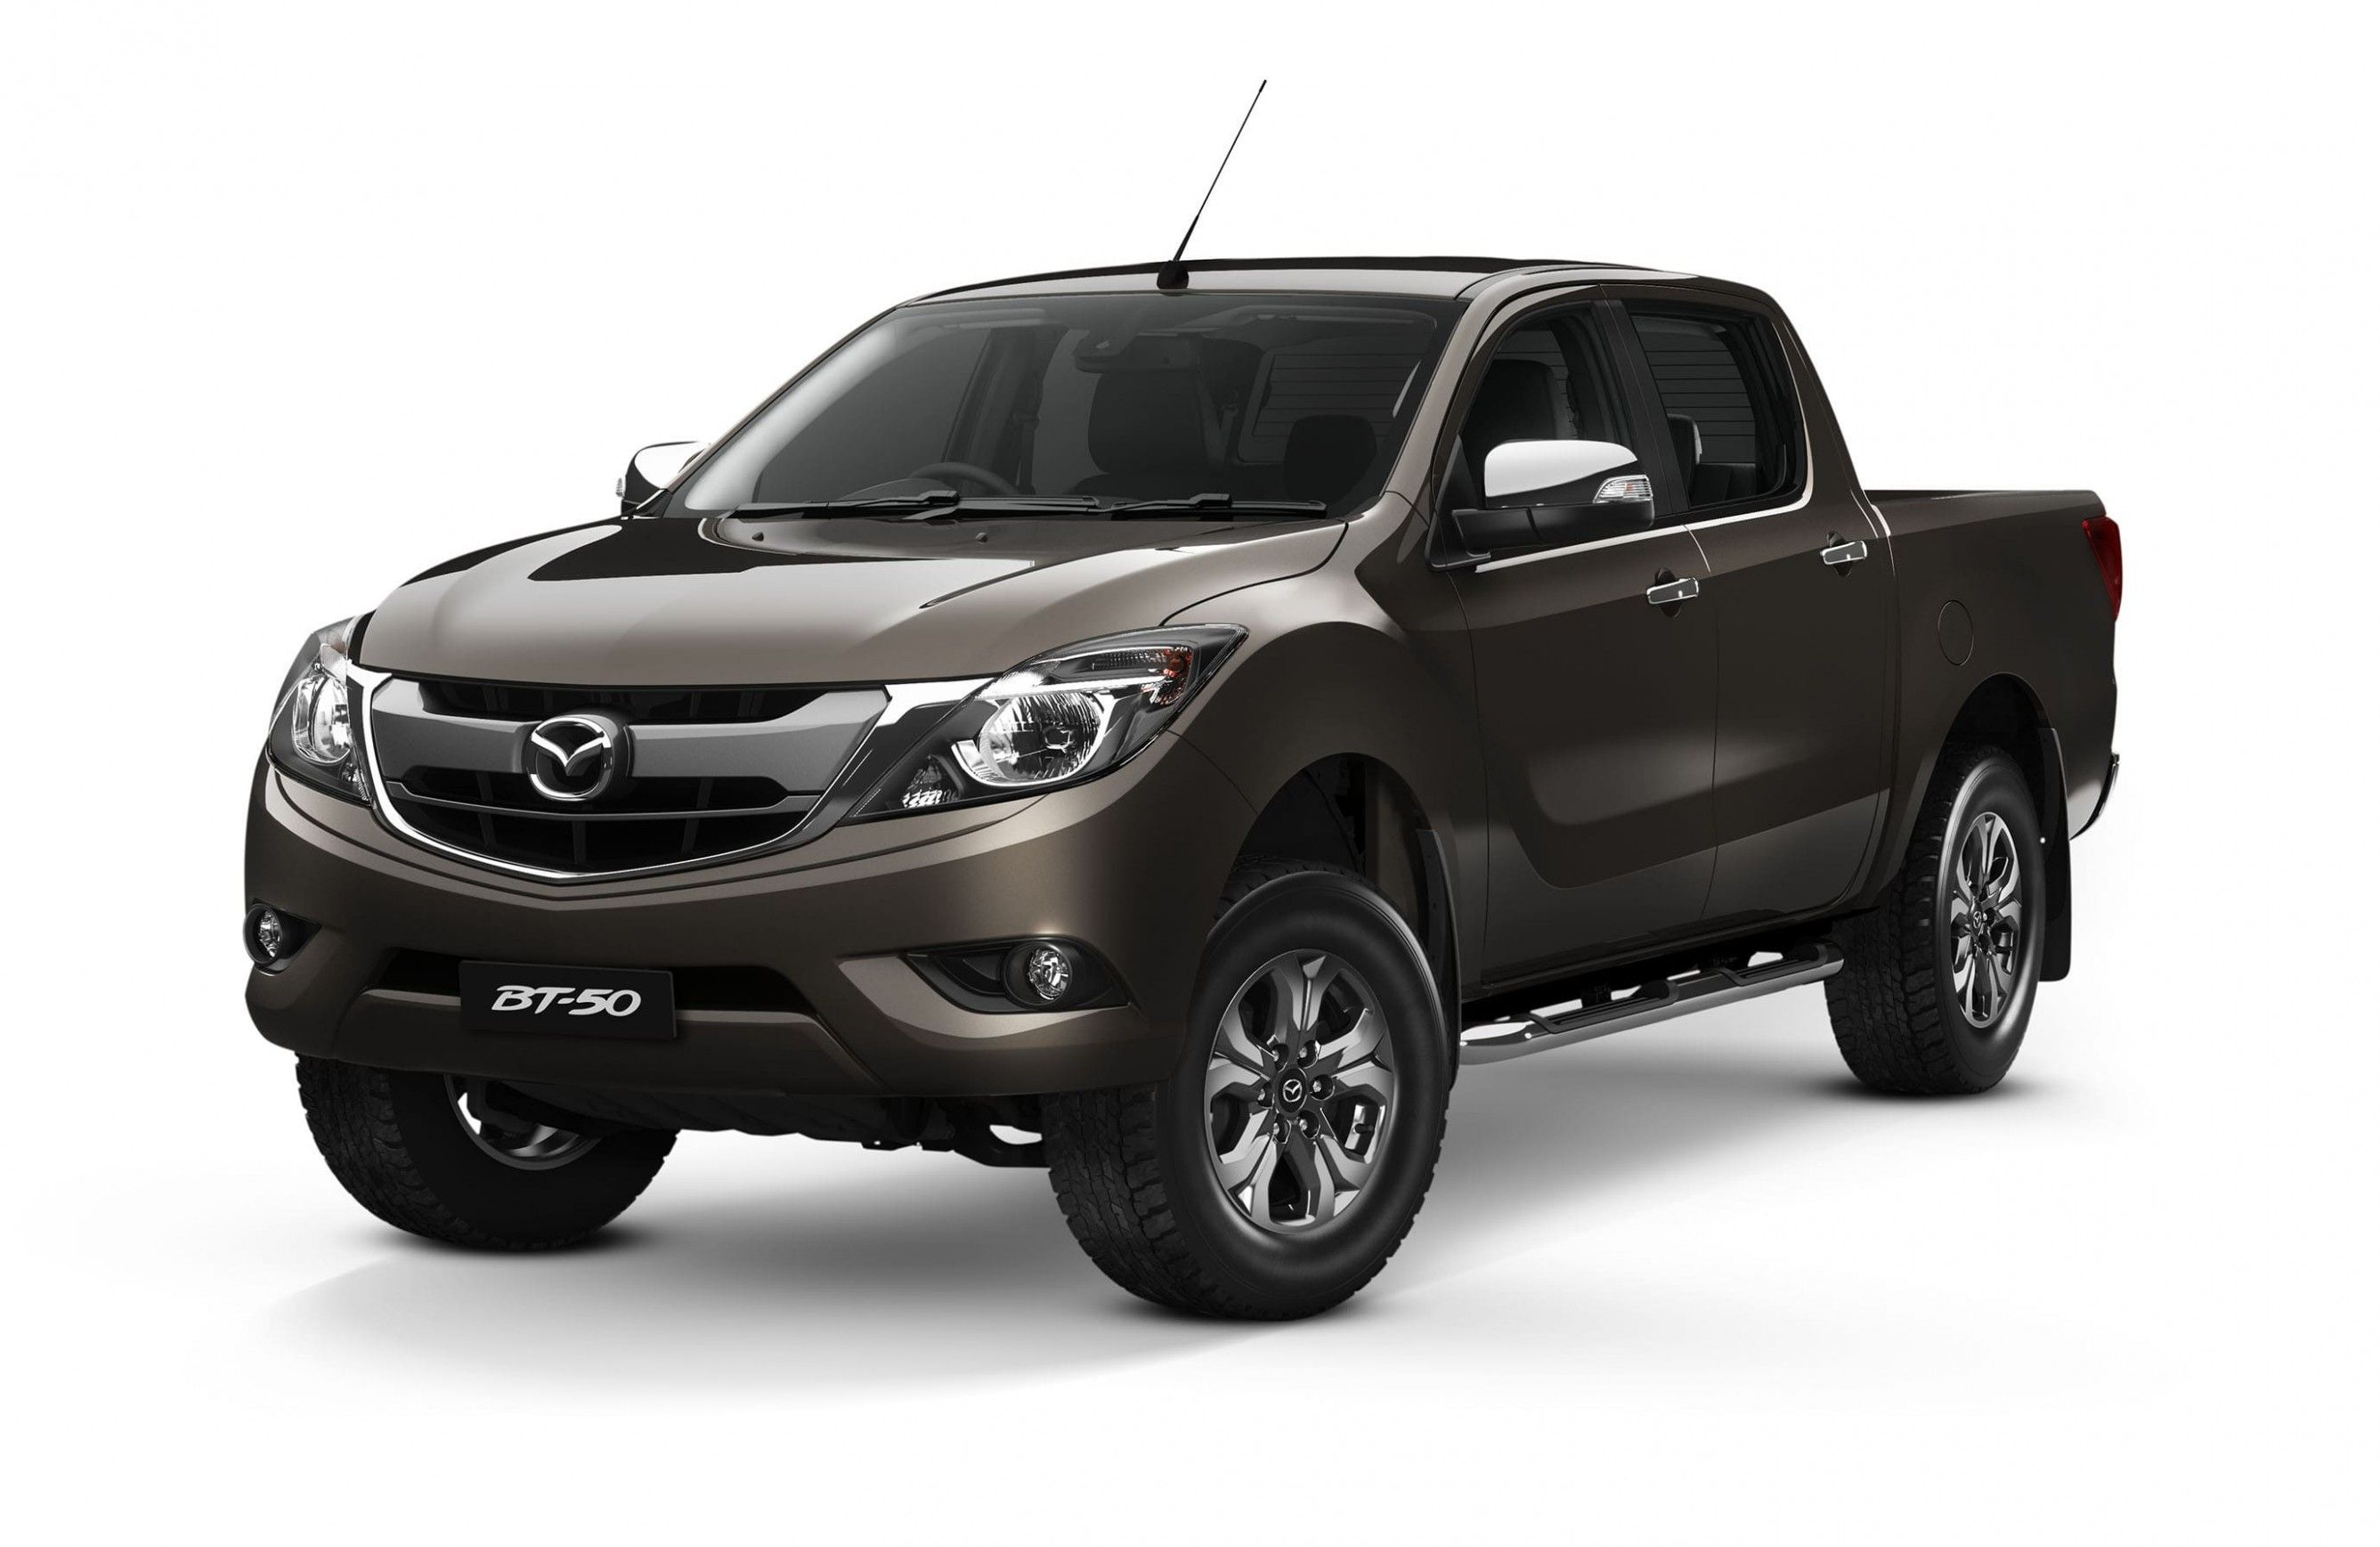 Mazda Bt 50 Pro 2020 Price Design And Review Mazda Daihatsu Ban Tai